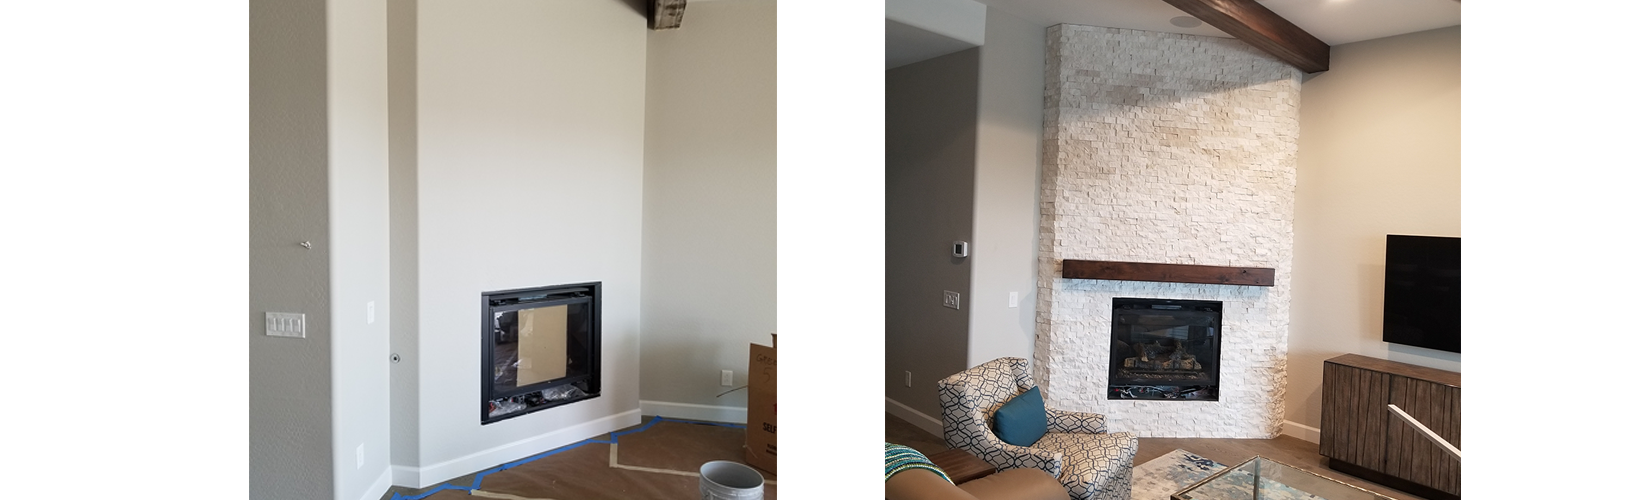 Lutz-fireplace-before-after